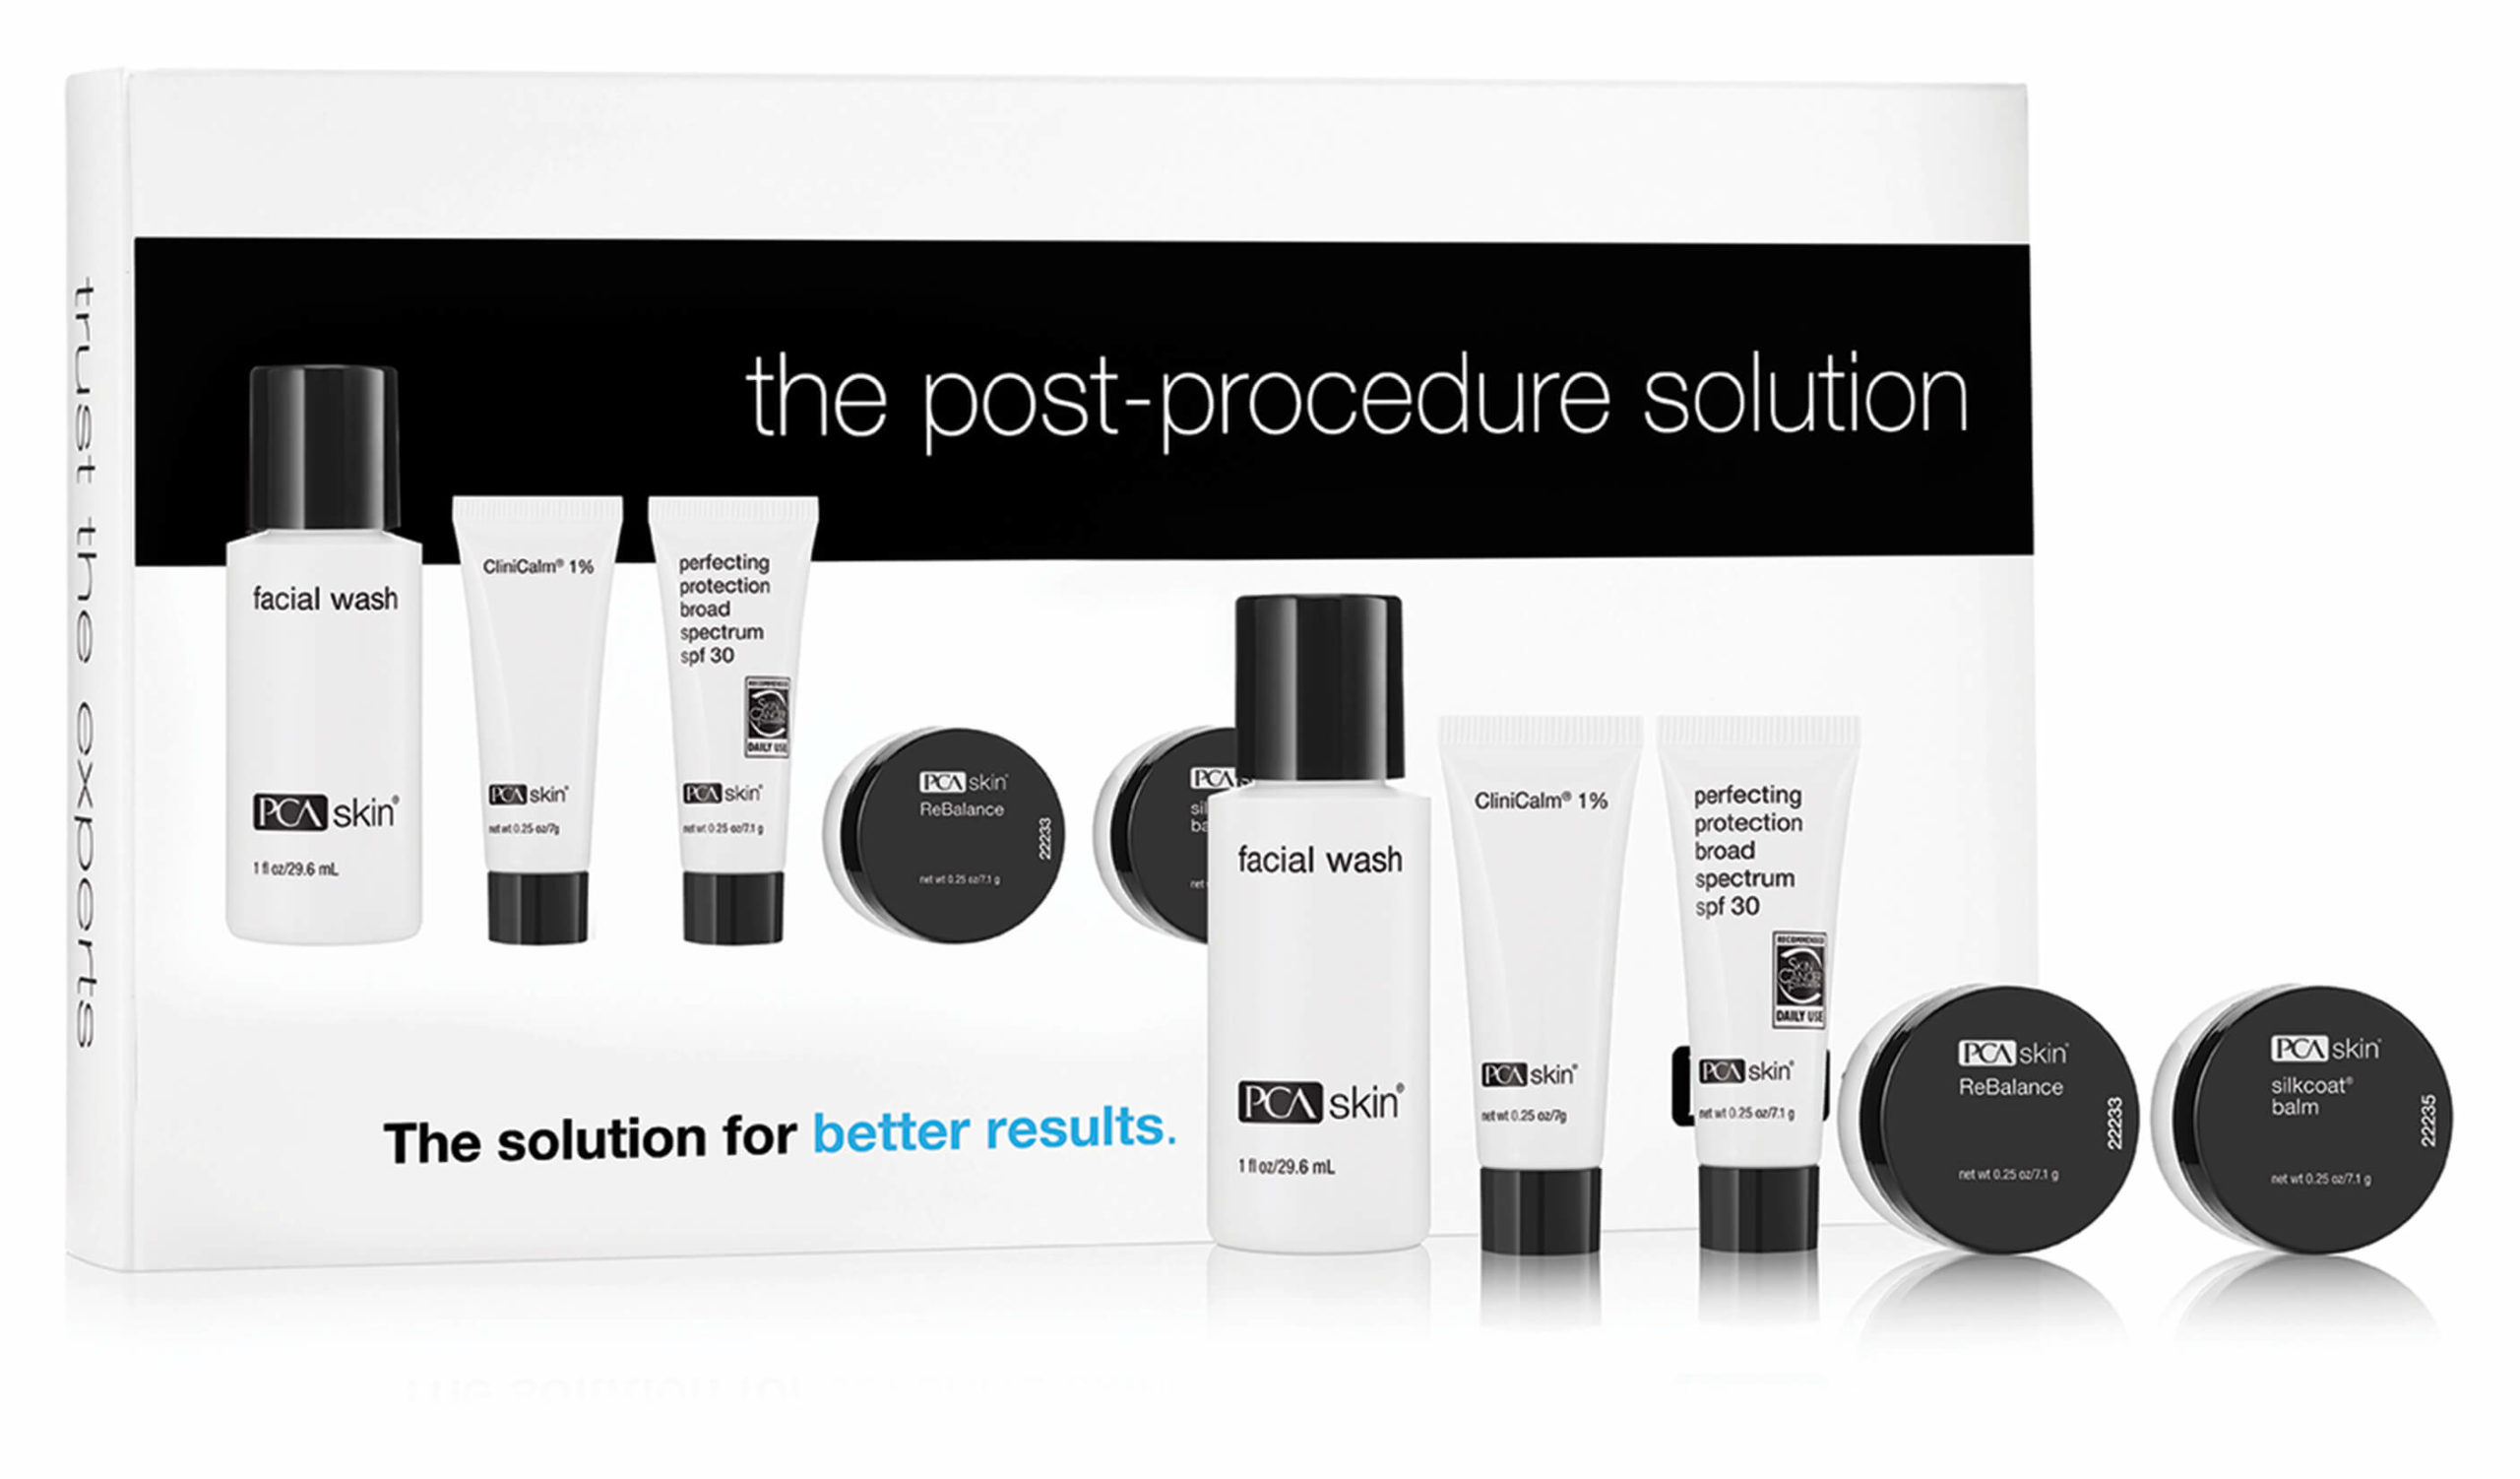 The Post-procedure Solution products group